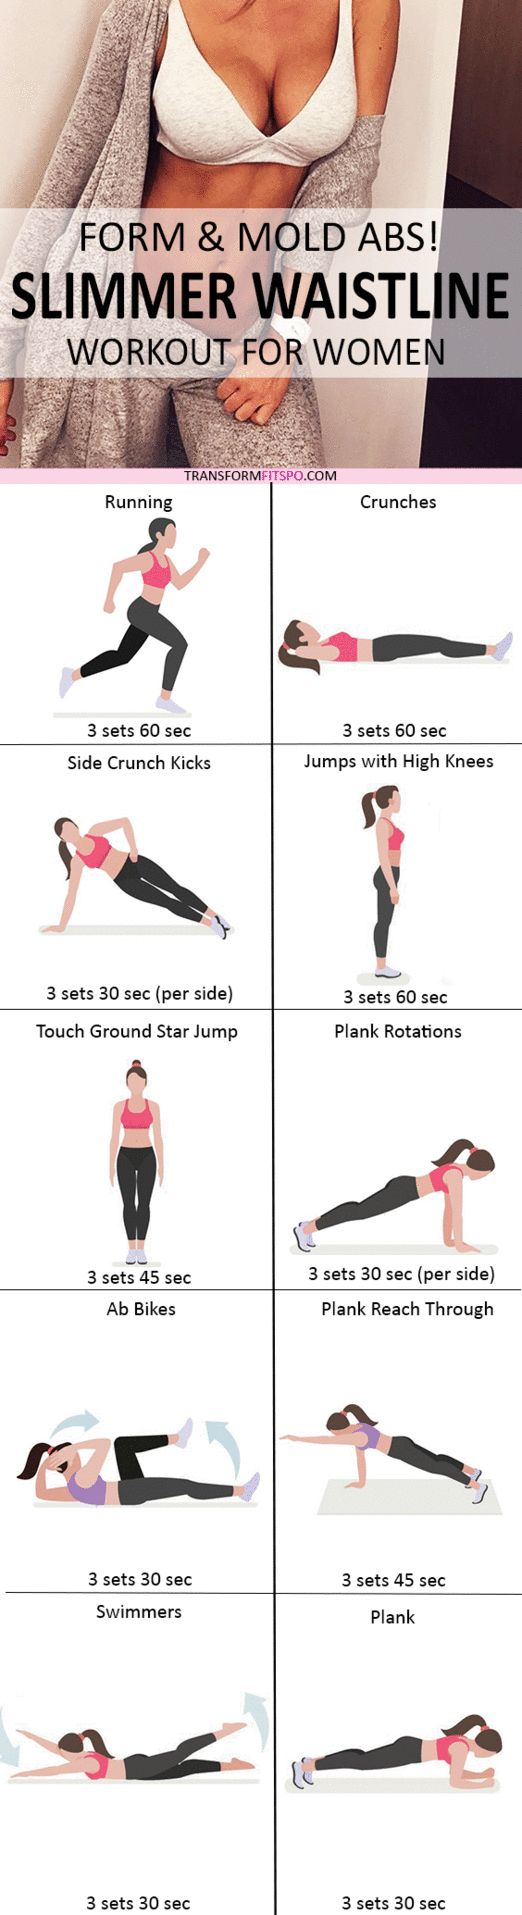 Repin and share if this intense workout gave you shocking results! Read the workout post for all the information!